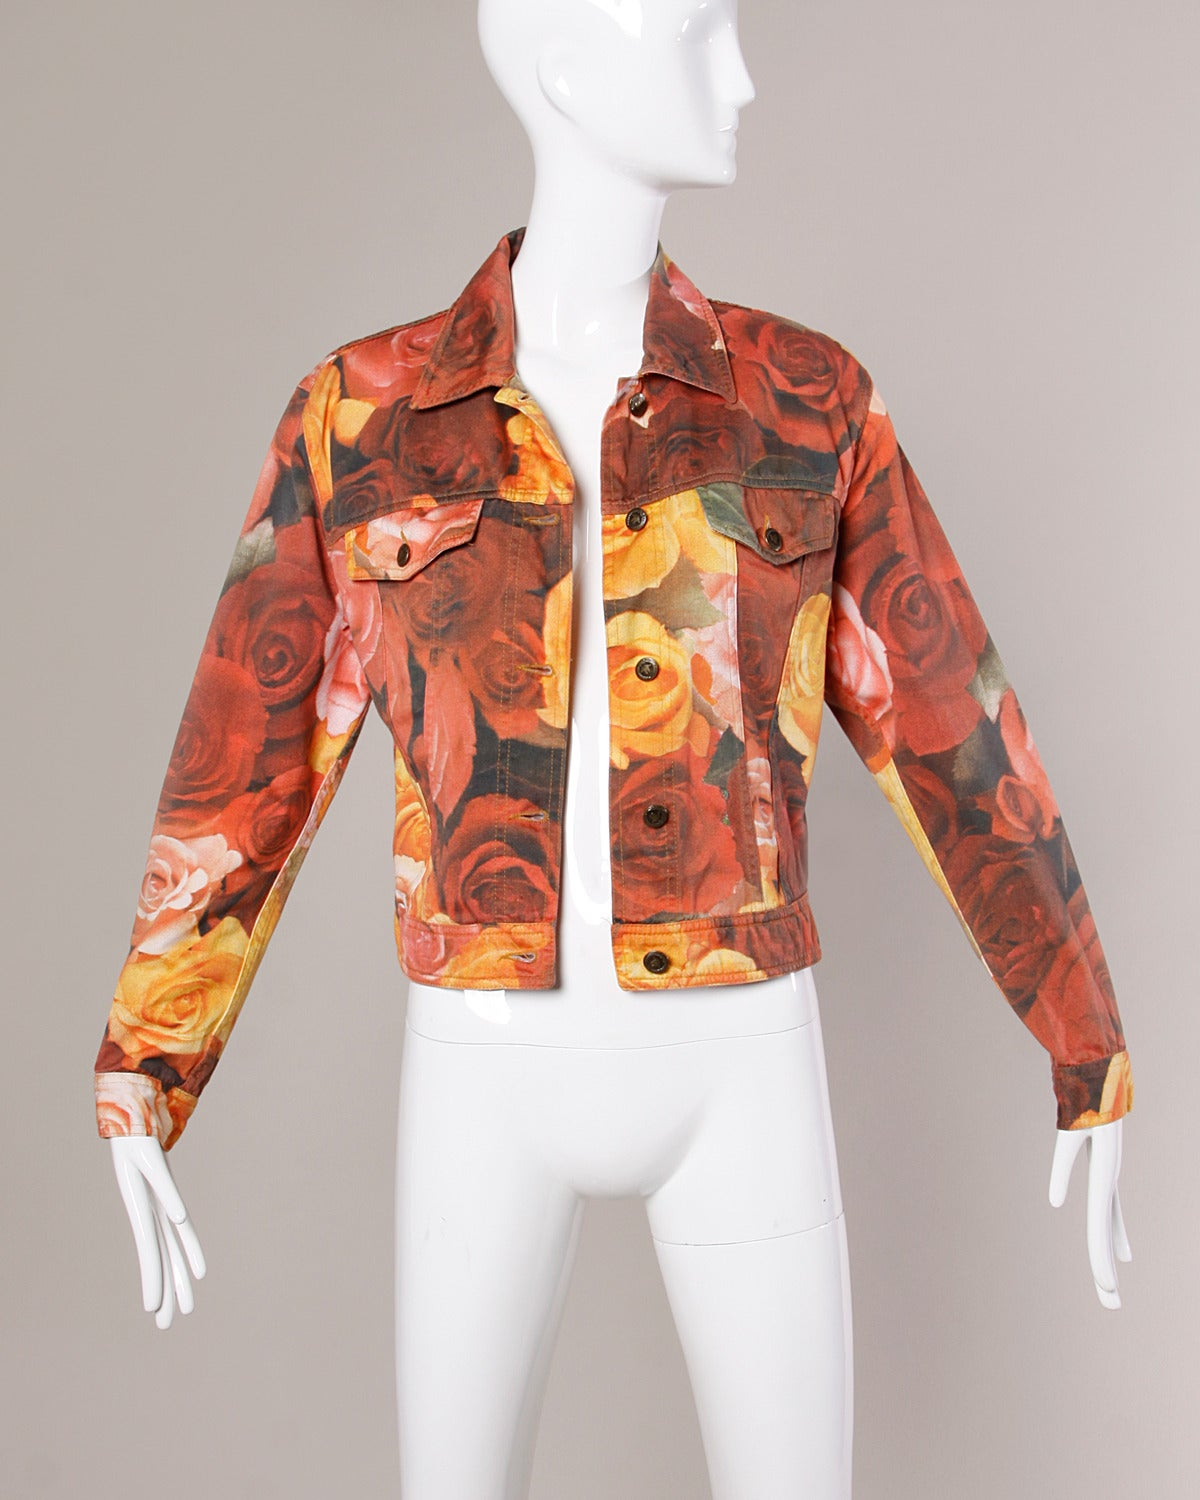 Moschino Jeans Vintage Floral Photo Print Denim Jacket, 1990s  For Sale 2